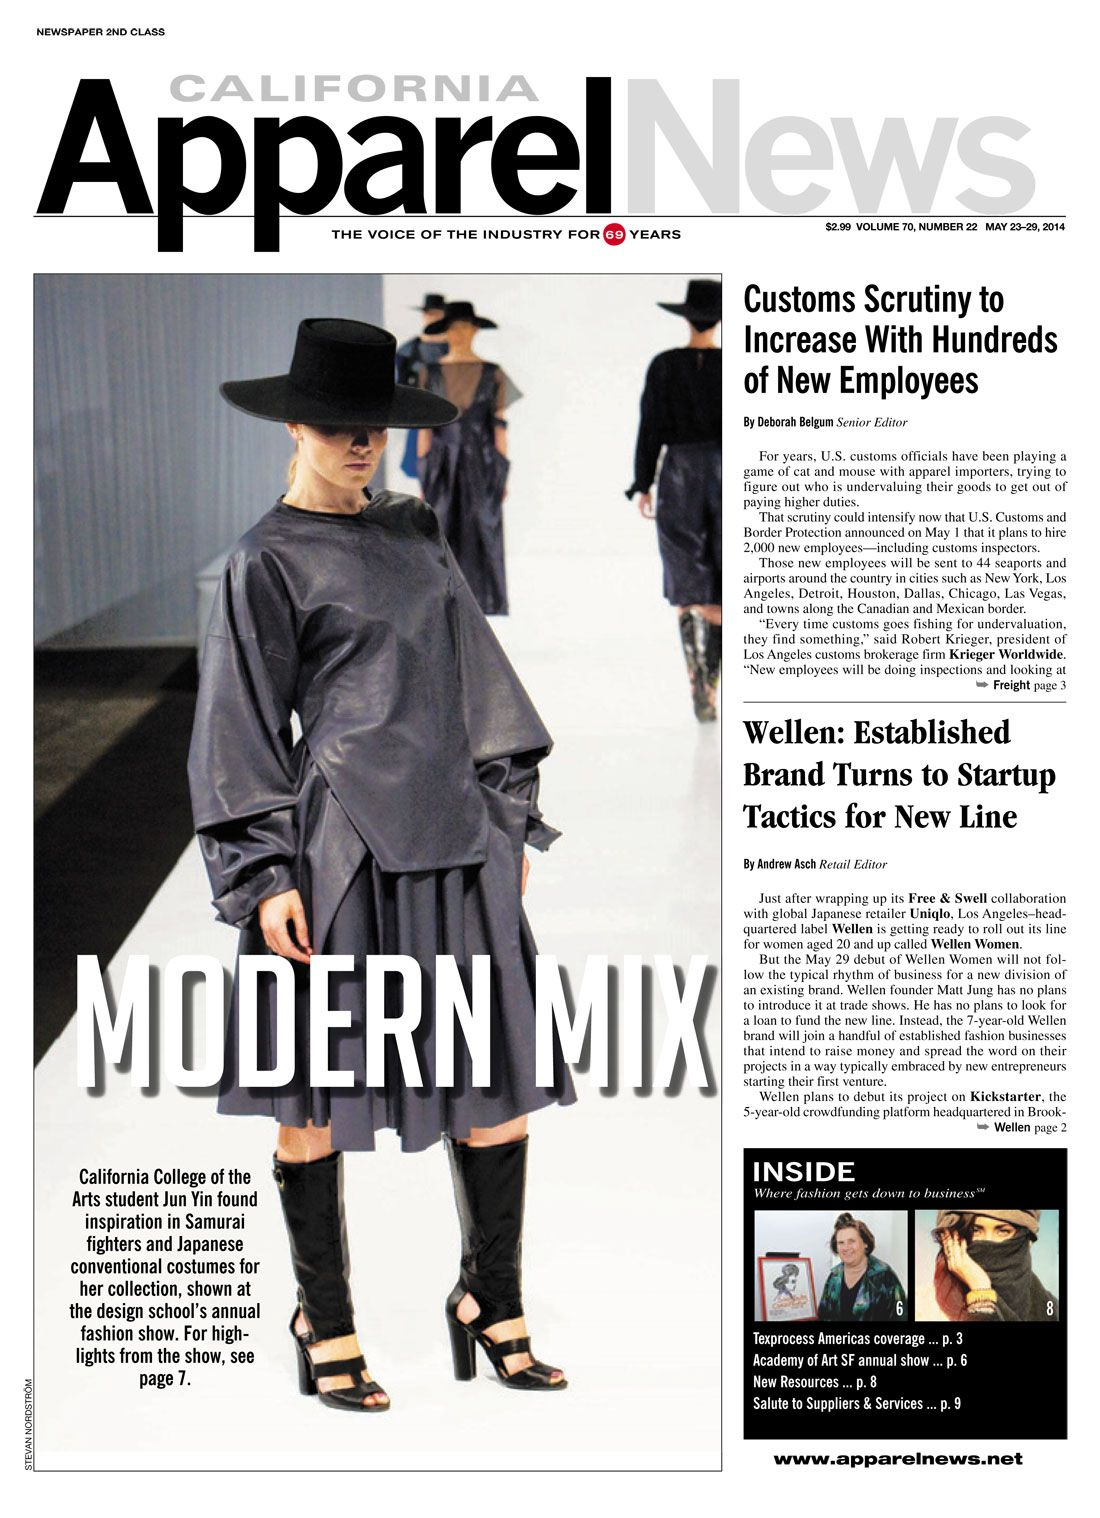 Fashion S Modern Mix Http Apparelnews Net Modern Mix Sf San Francisco California College Arts Fashion Design Pr California New Employee Apparel